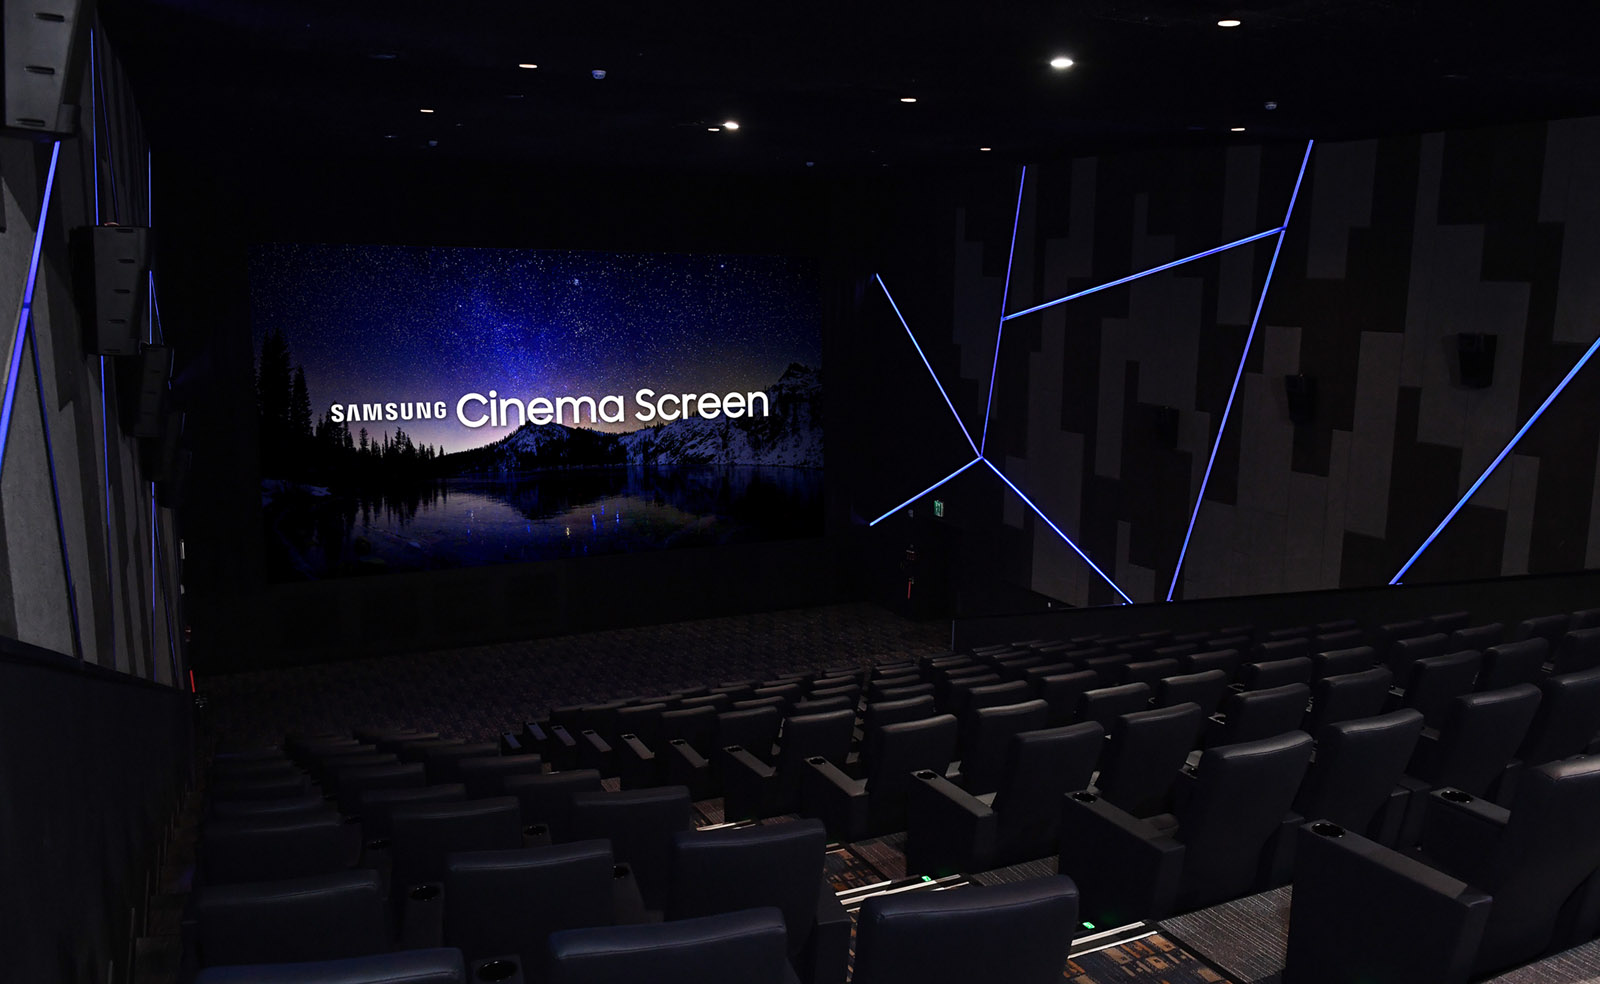 Samsung shows off the world's first LED Cinema Screen